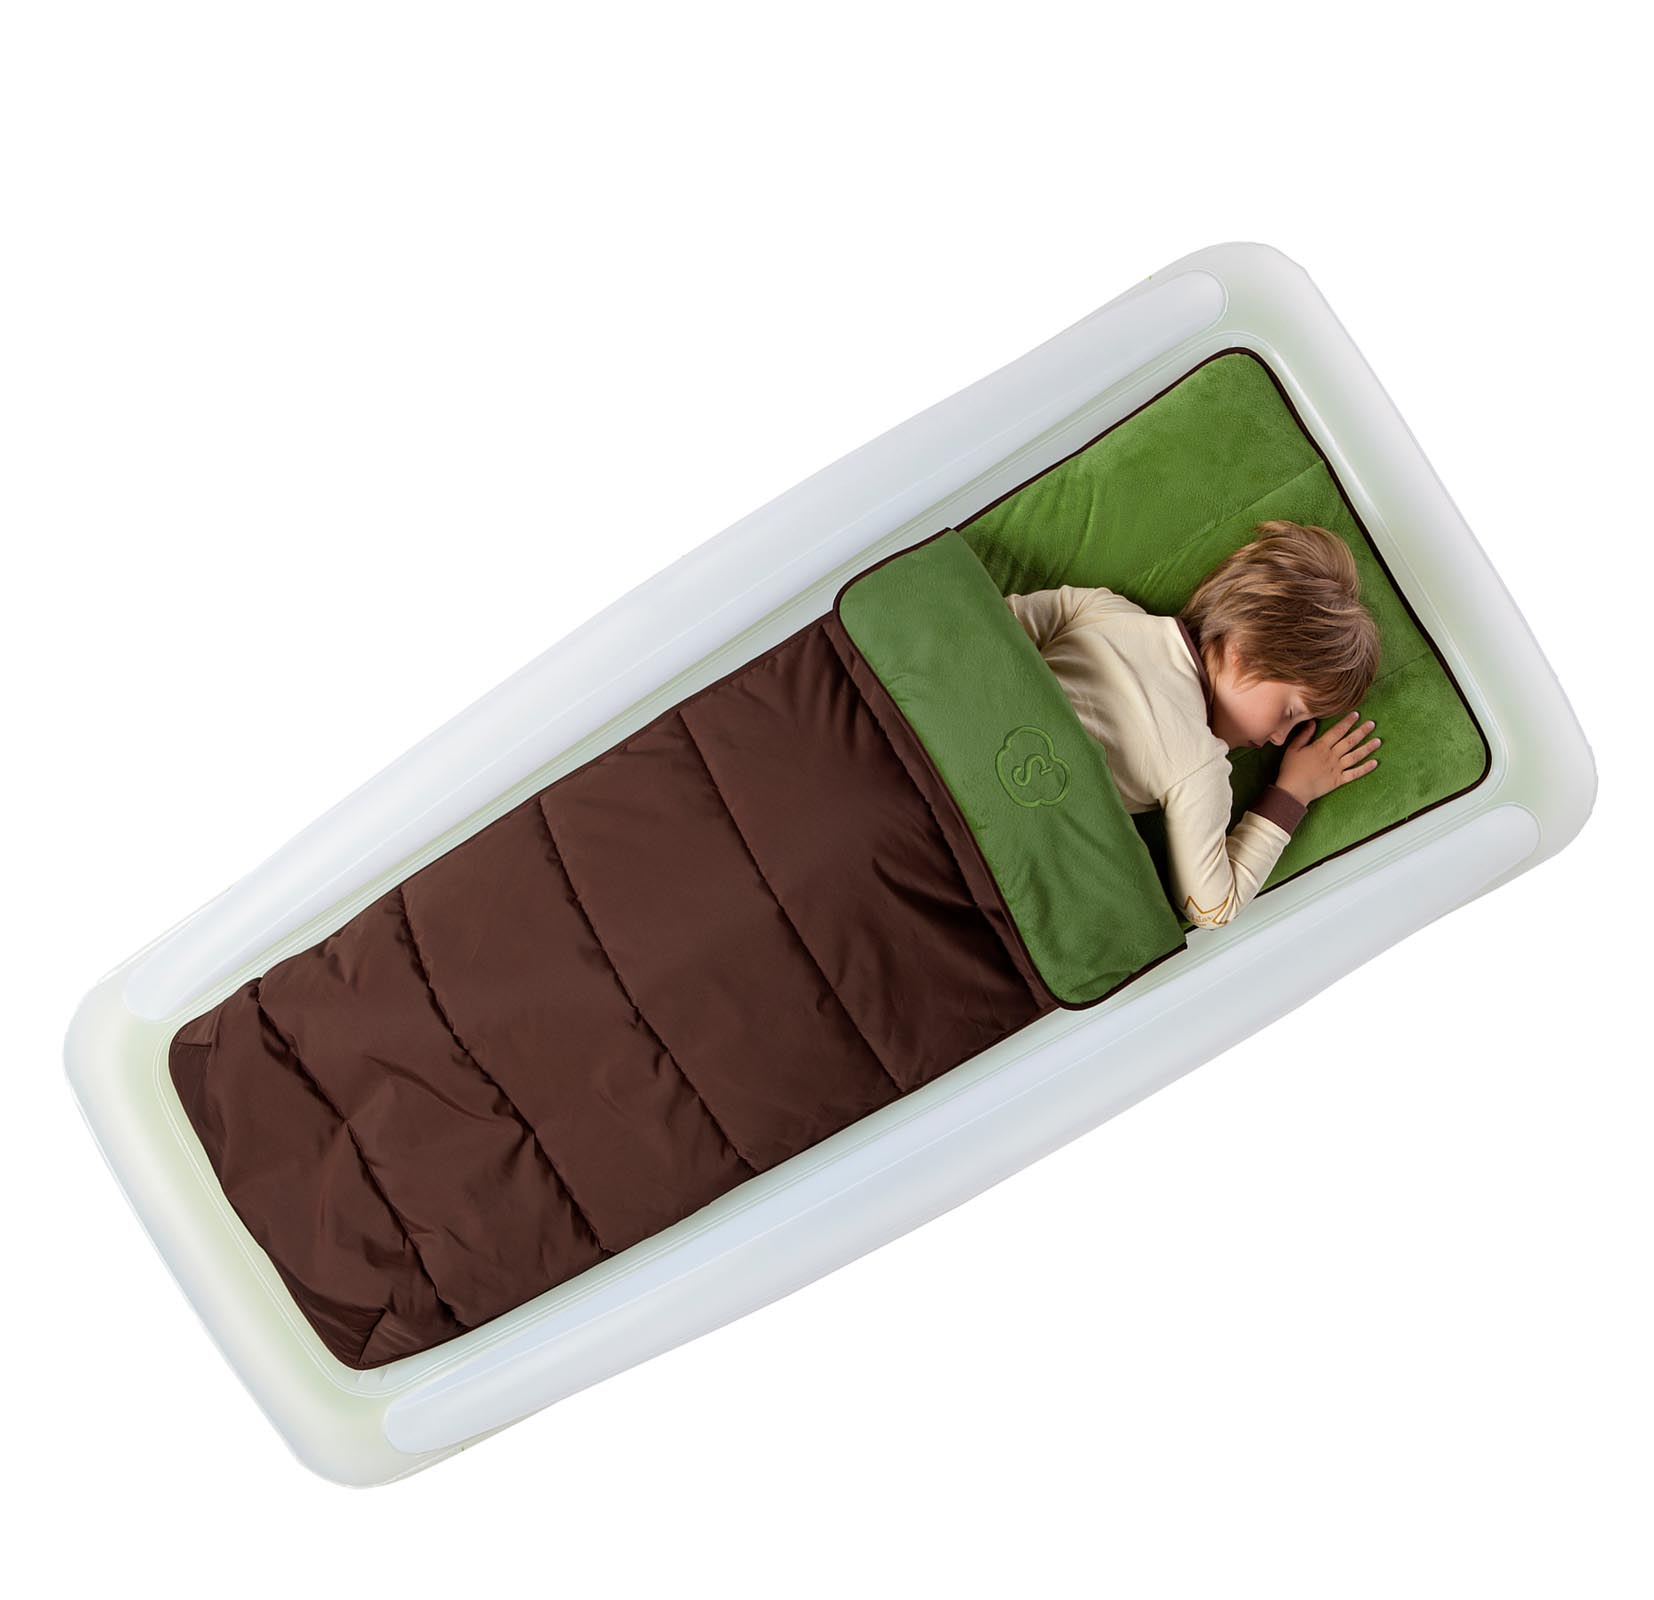 Shrunks Tuckaire Kids Outdoor Air Bed w/ Rails & Sleeping Bag